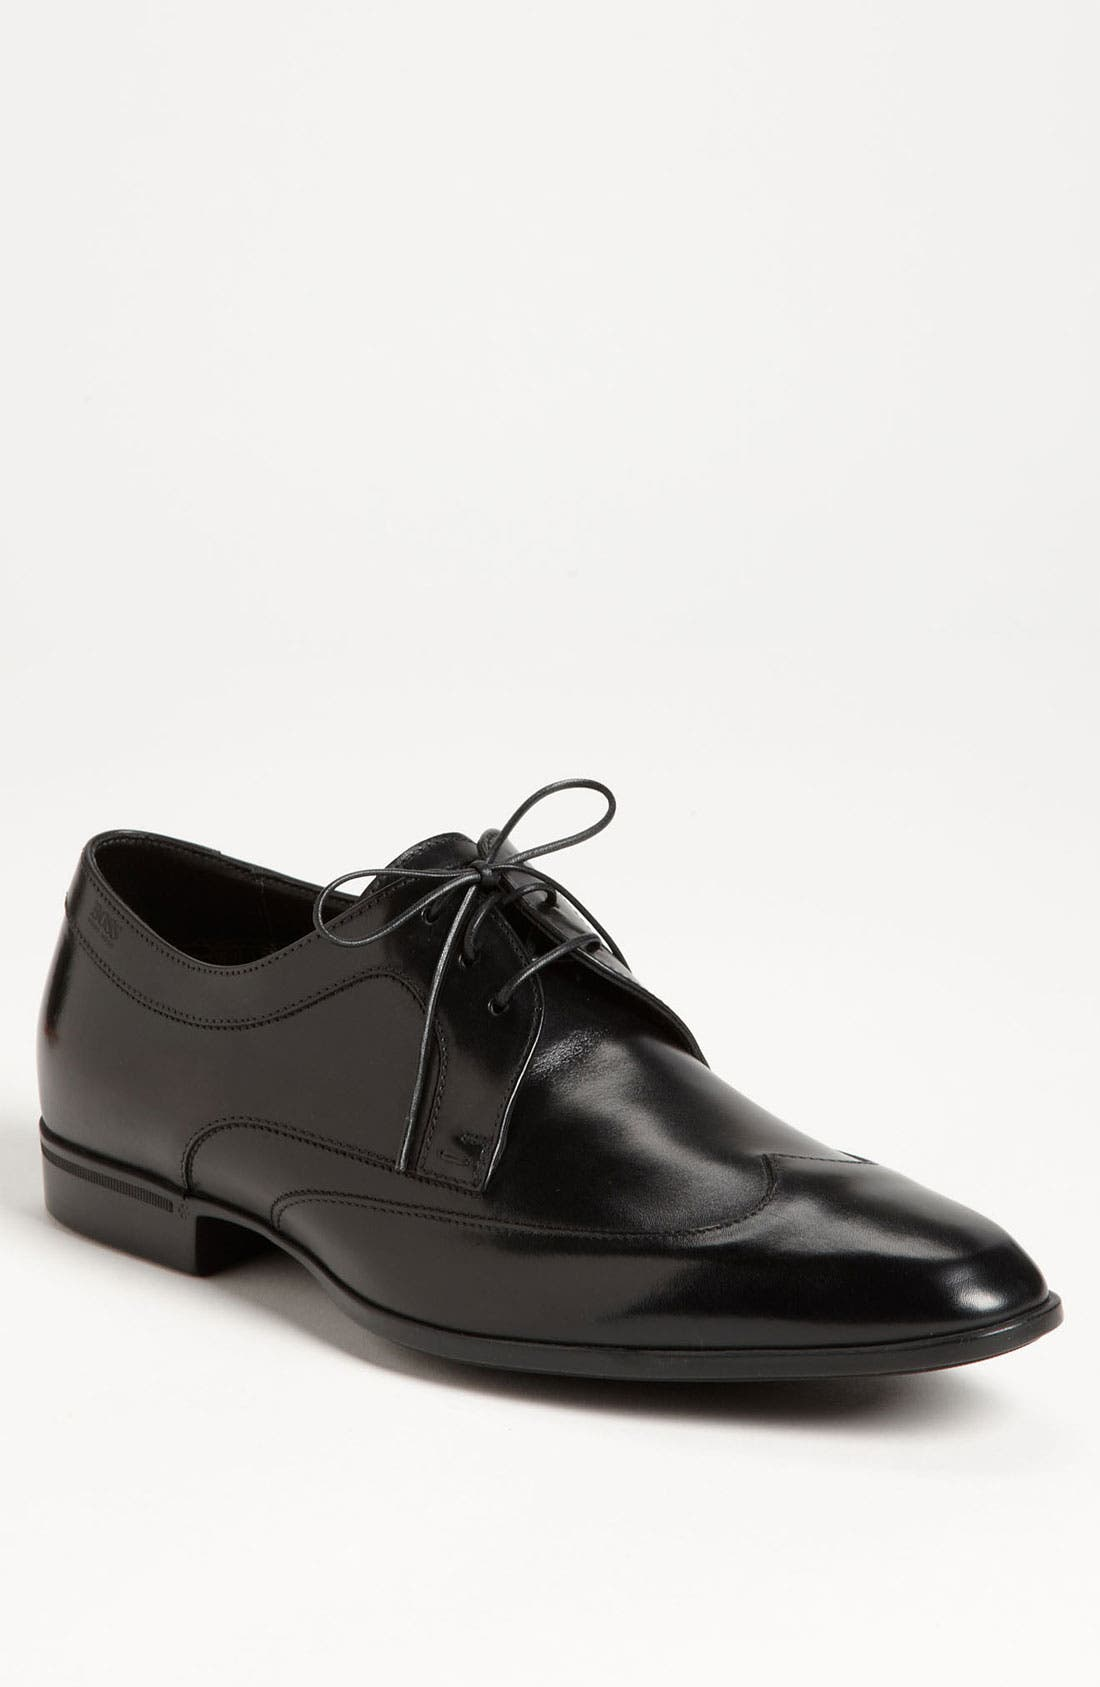 Alternate Image 1 Selected - BOSS Black 'Neswin' Wingtip Derby